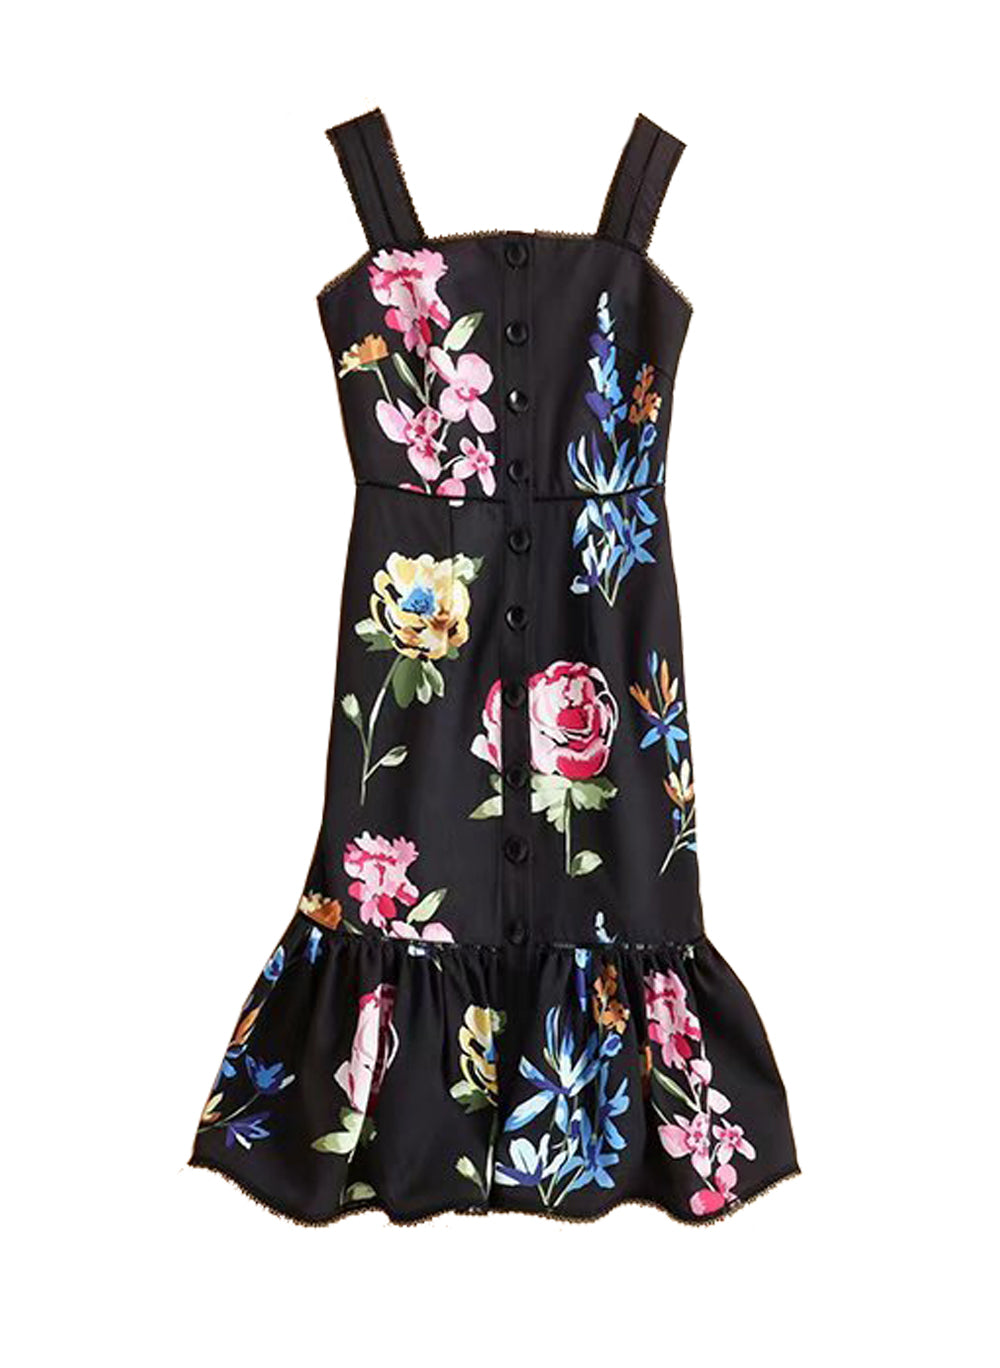 DOAB Floral Square Neck Strappy Frill Hem Midi Dress